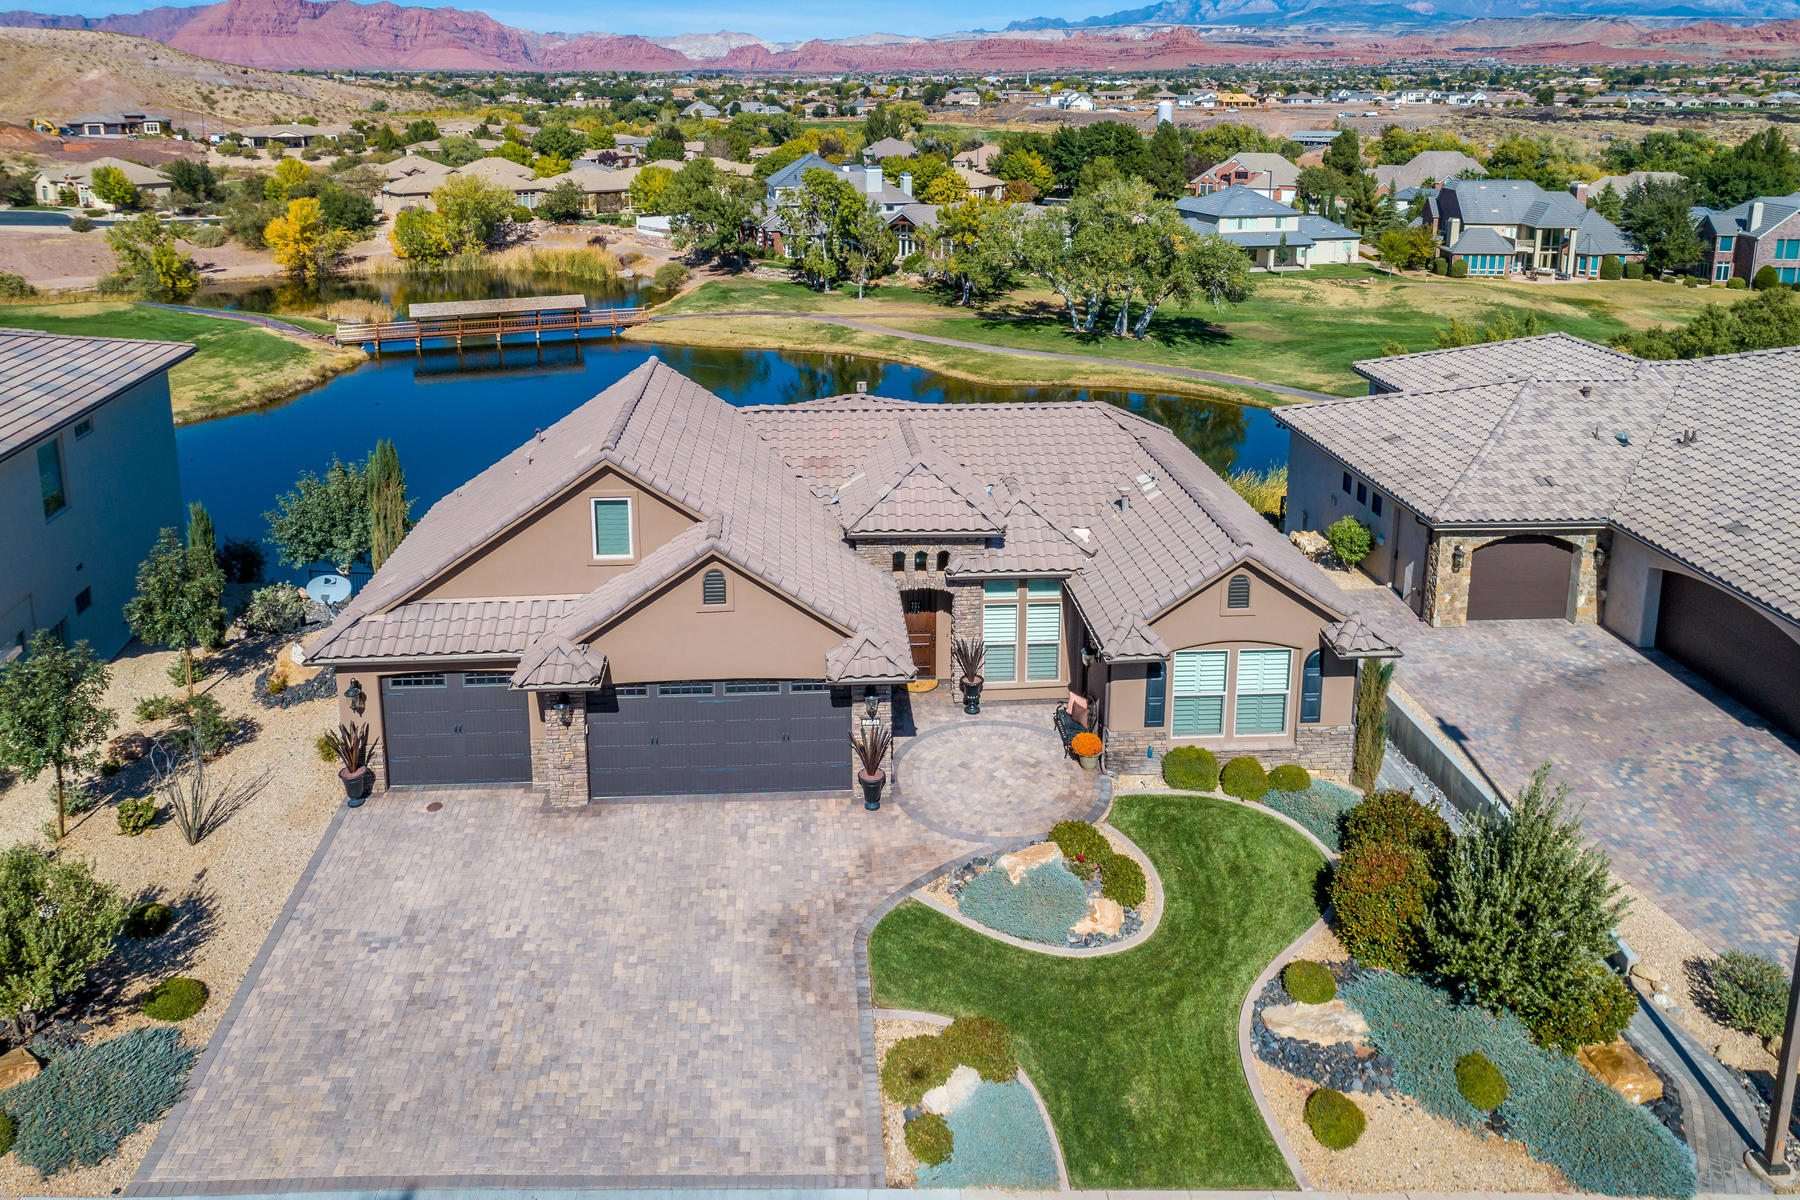 Single Family Homes for Sale at Masterfully Crafted Custom Home 2584 W Canyon Ridge Road, St. George, Utah 84770 United States